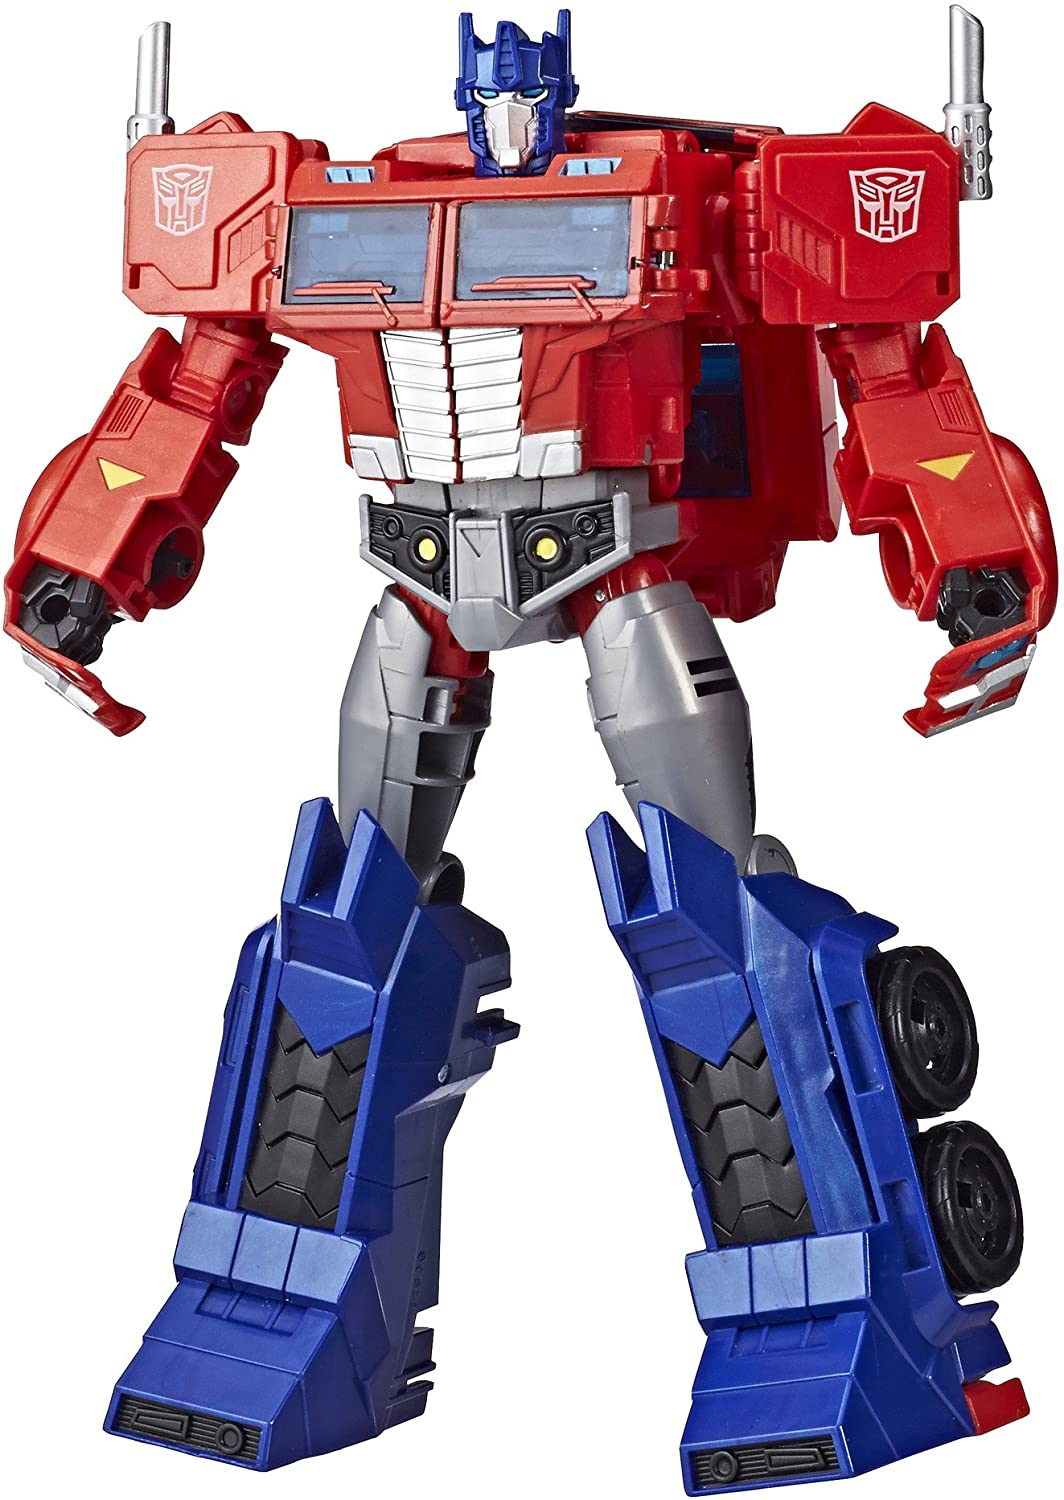 Transformers Toys Optimus Prime Cyberverse Ultimate Class Action Figure - Repeatable Matrix Mega Shot Action Attack Move - Toys for Kids 6 & Up, 11.5""